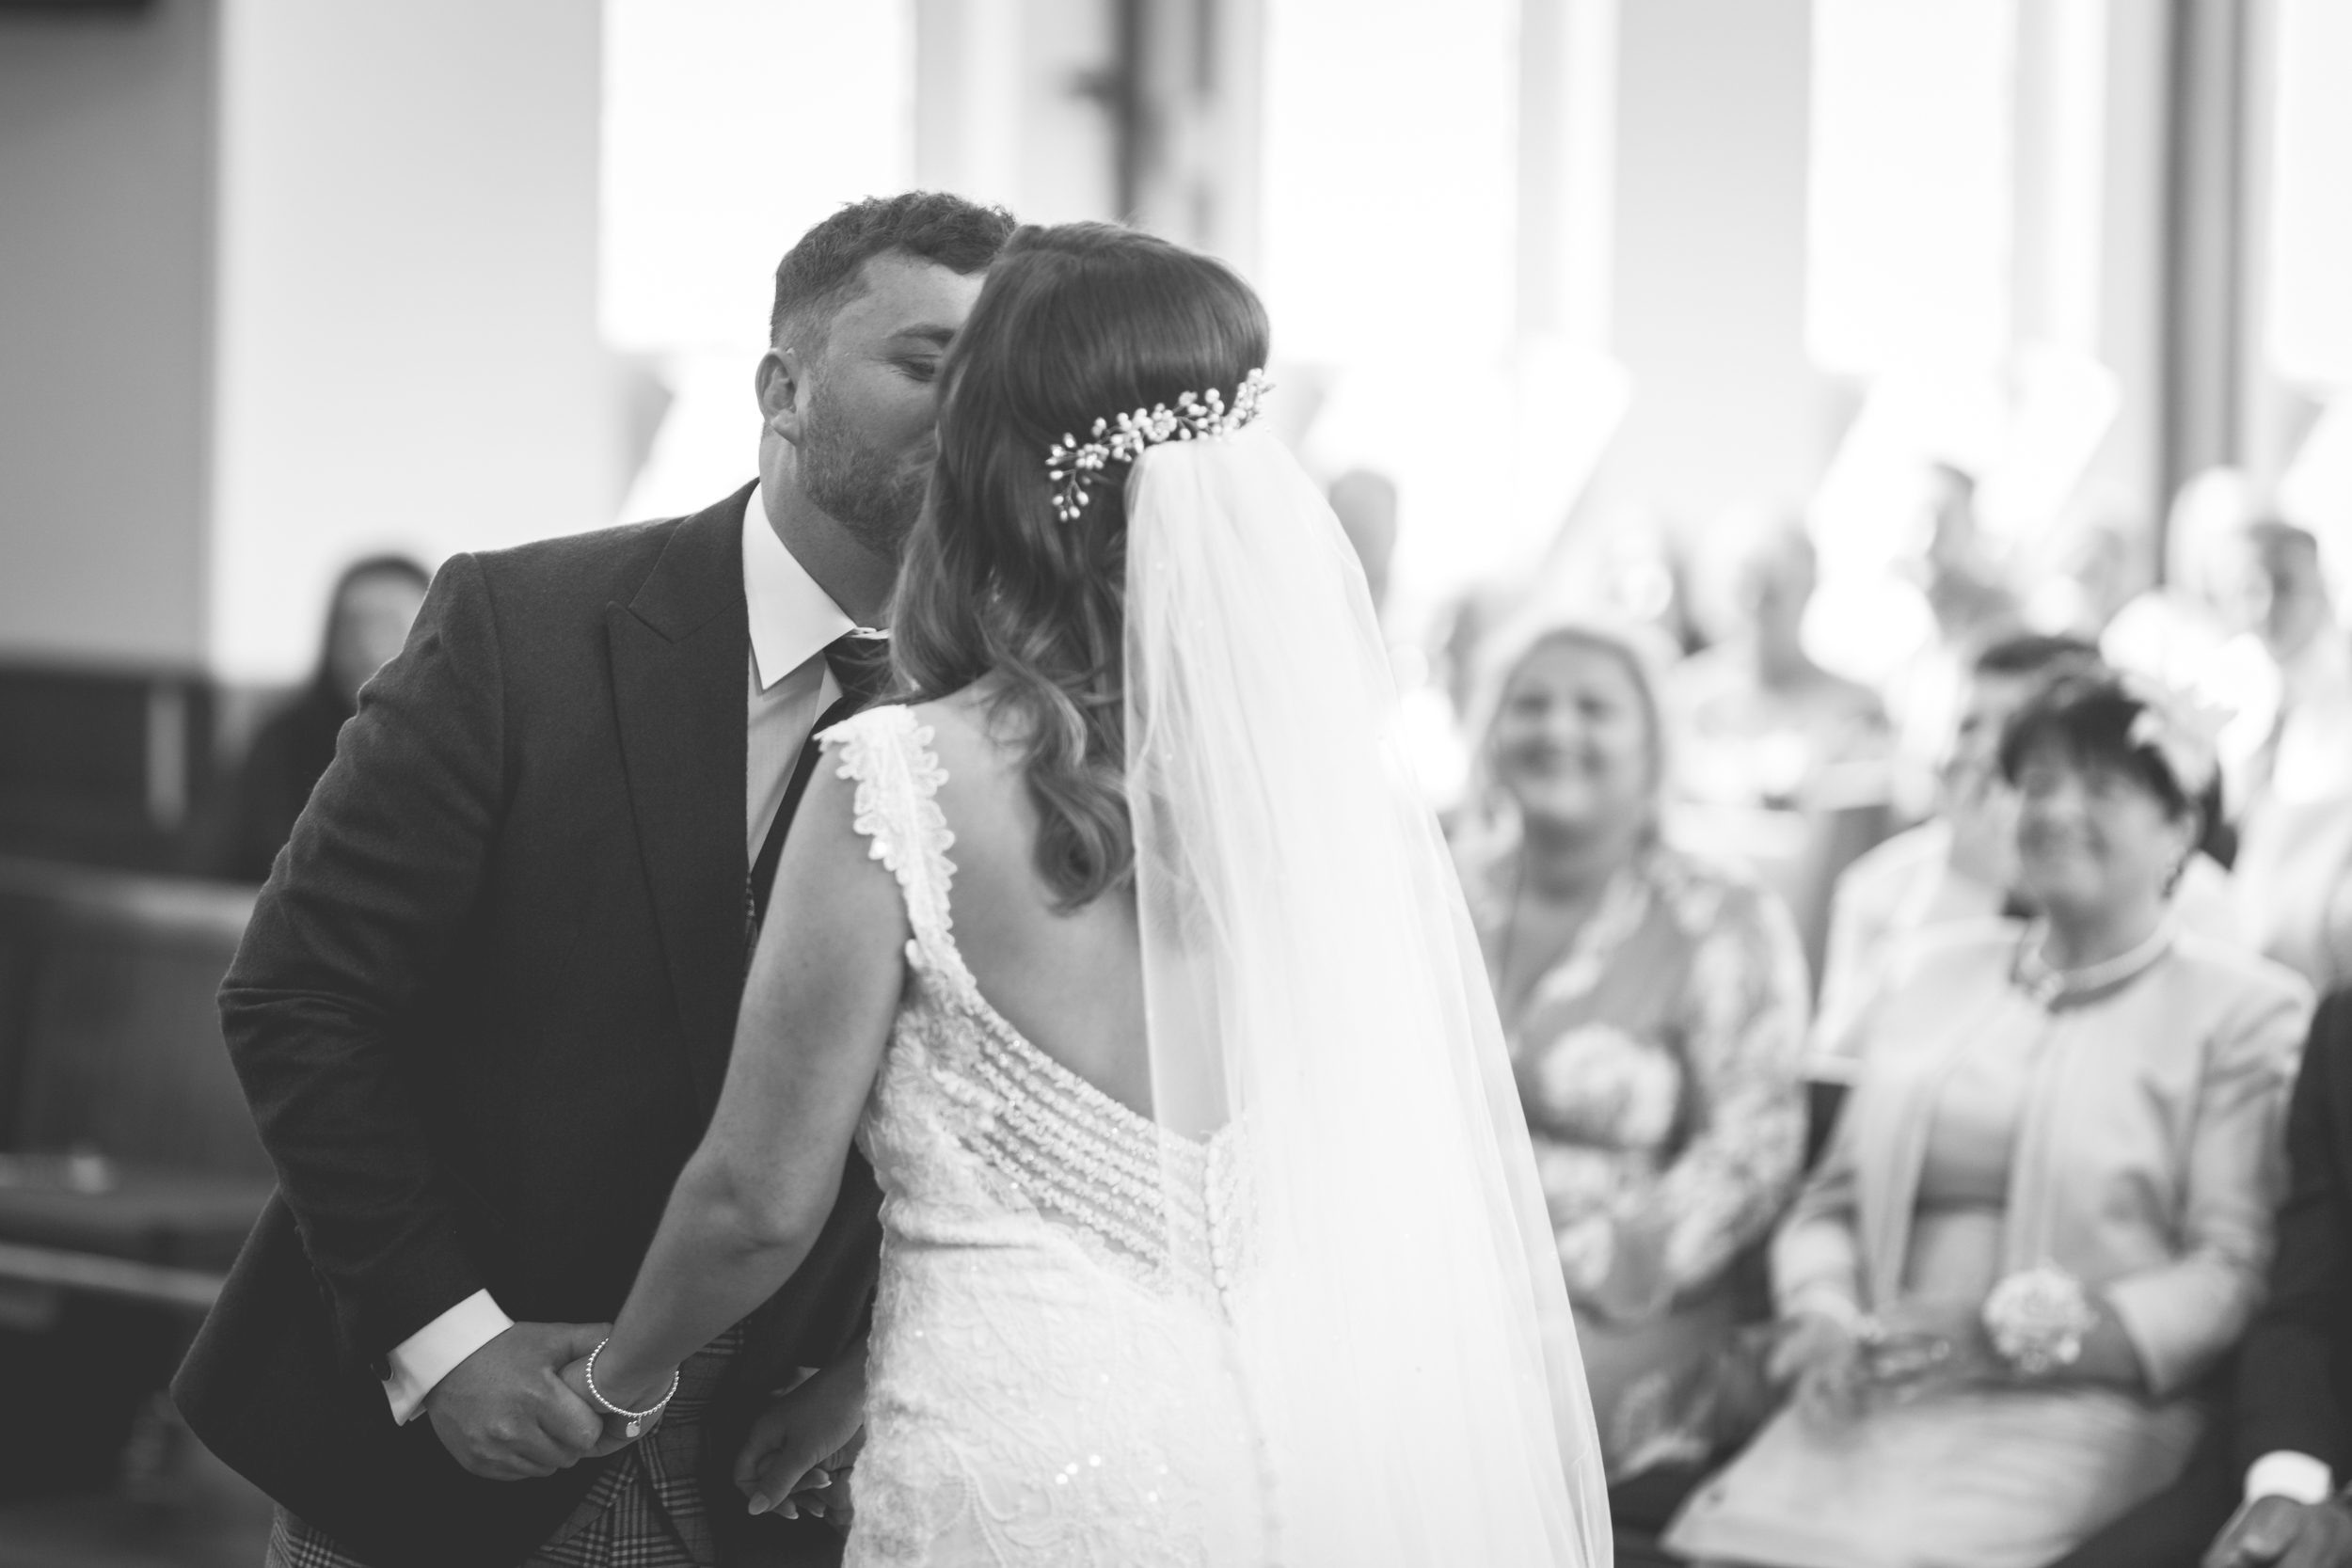 Brian McEwan | Northern Ireland Wedding Photographer | Rebecca & Michael | Ceremony-80.jpg